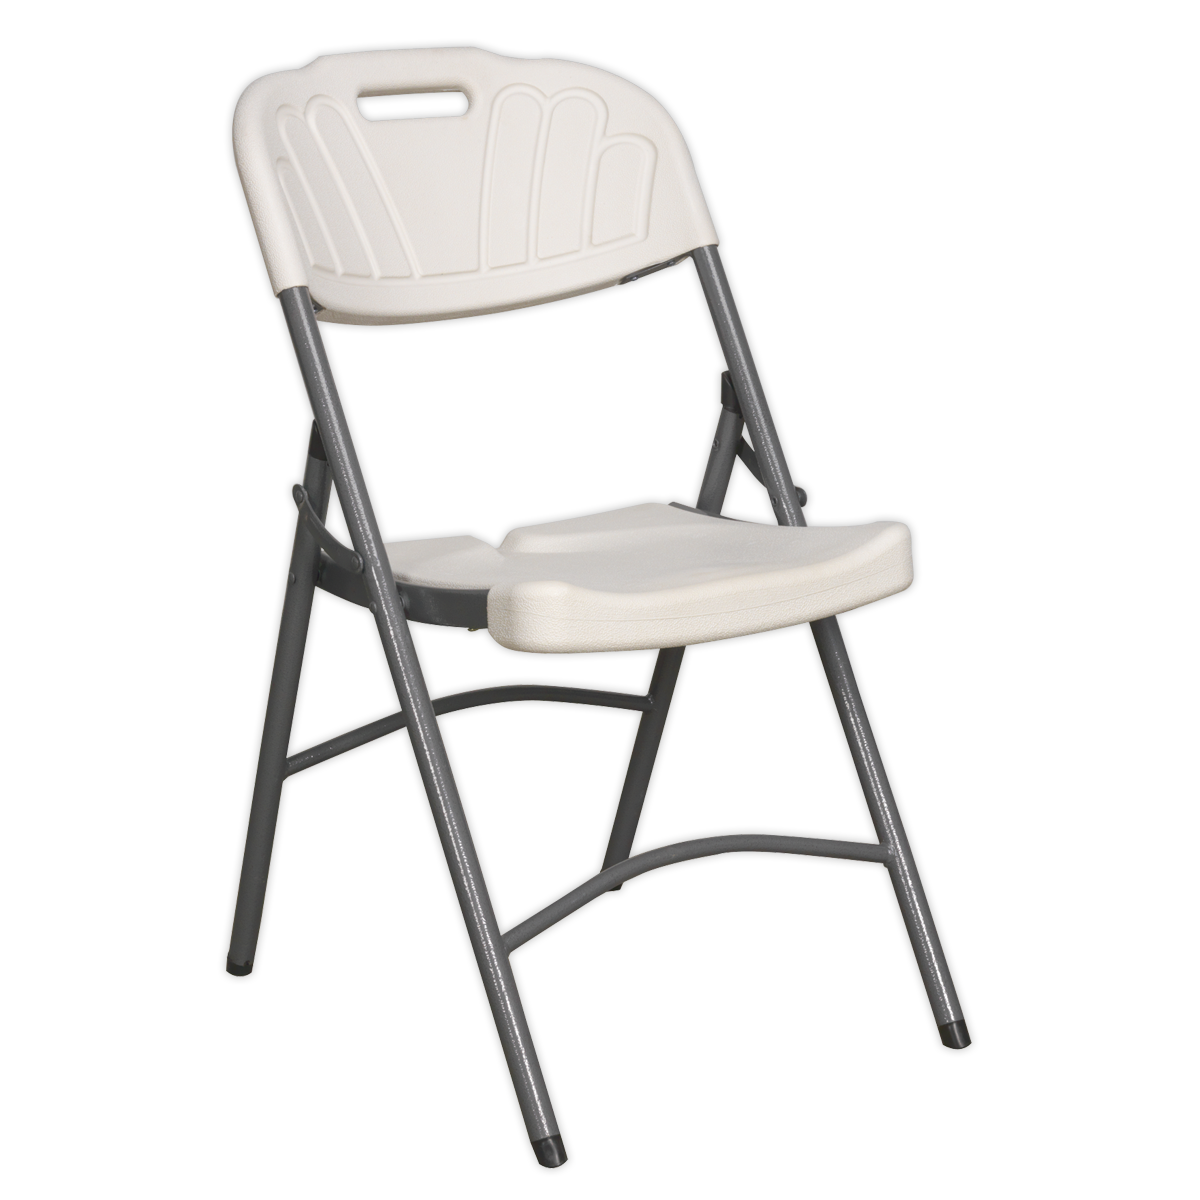 Folding Chair   SEALEY GL85 by Sealey   New